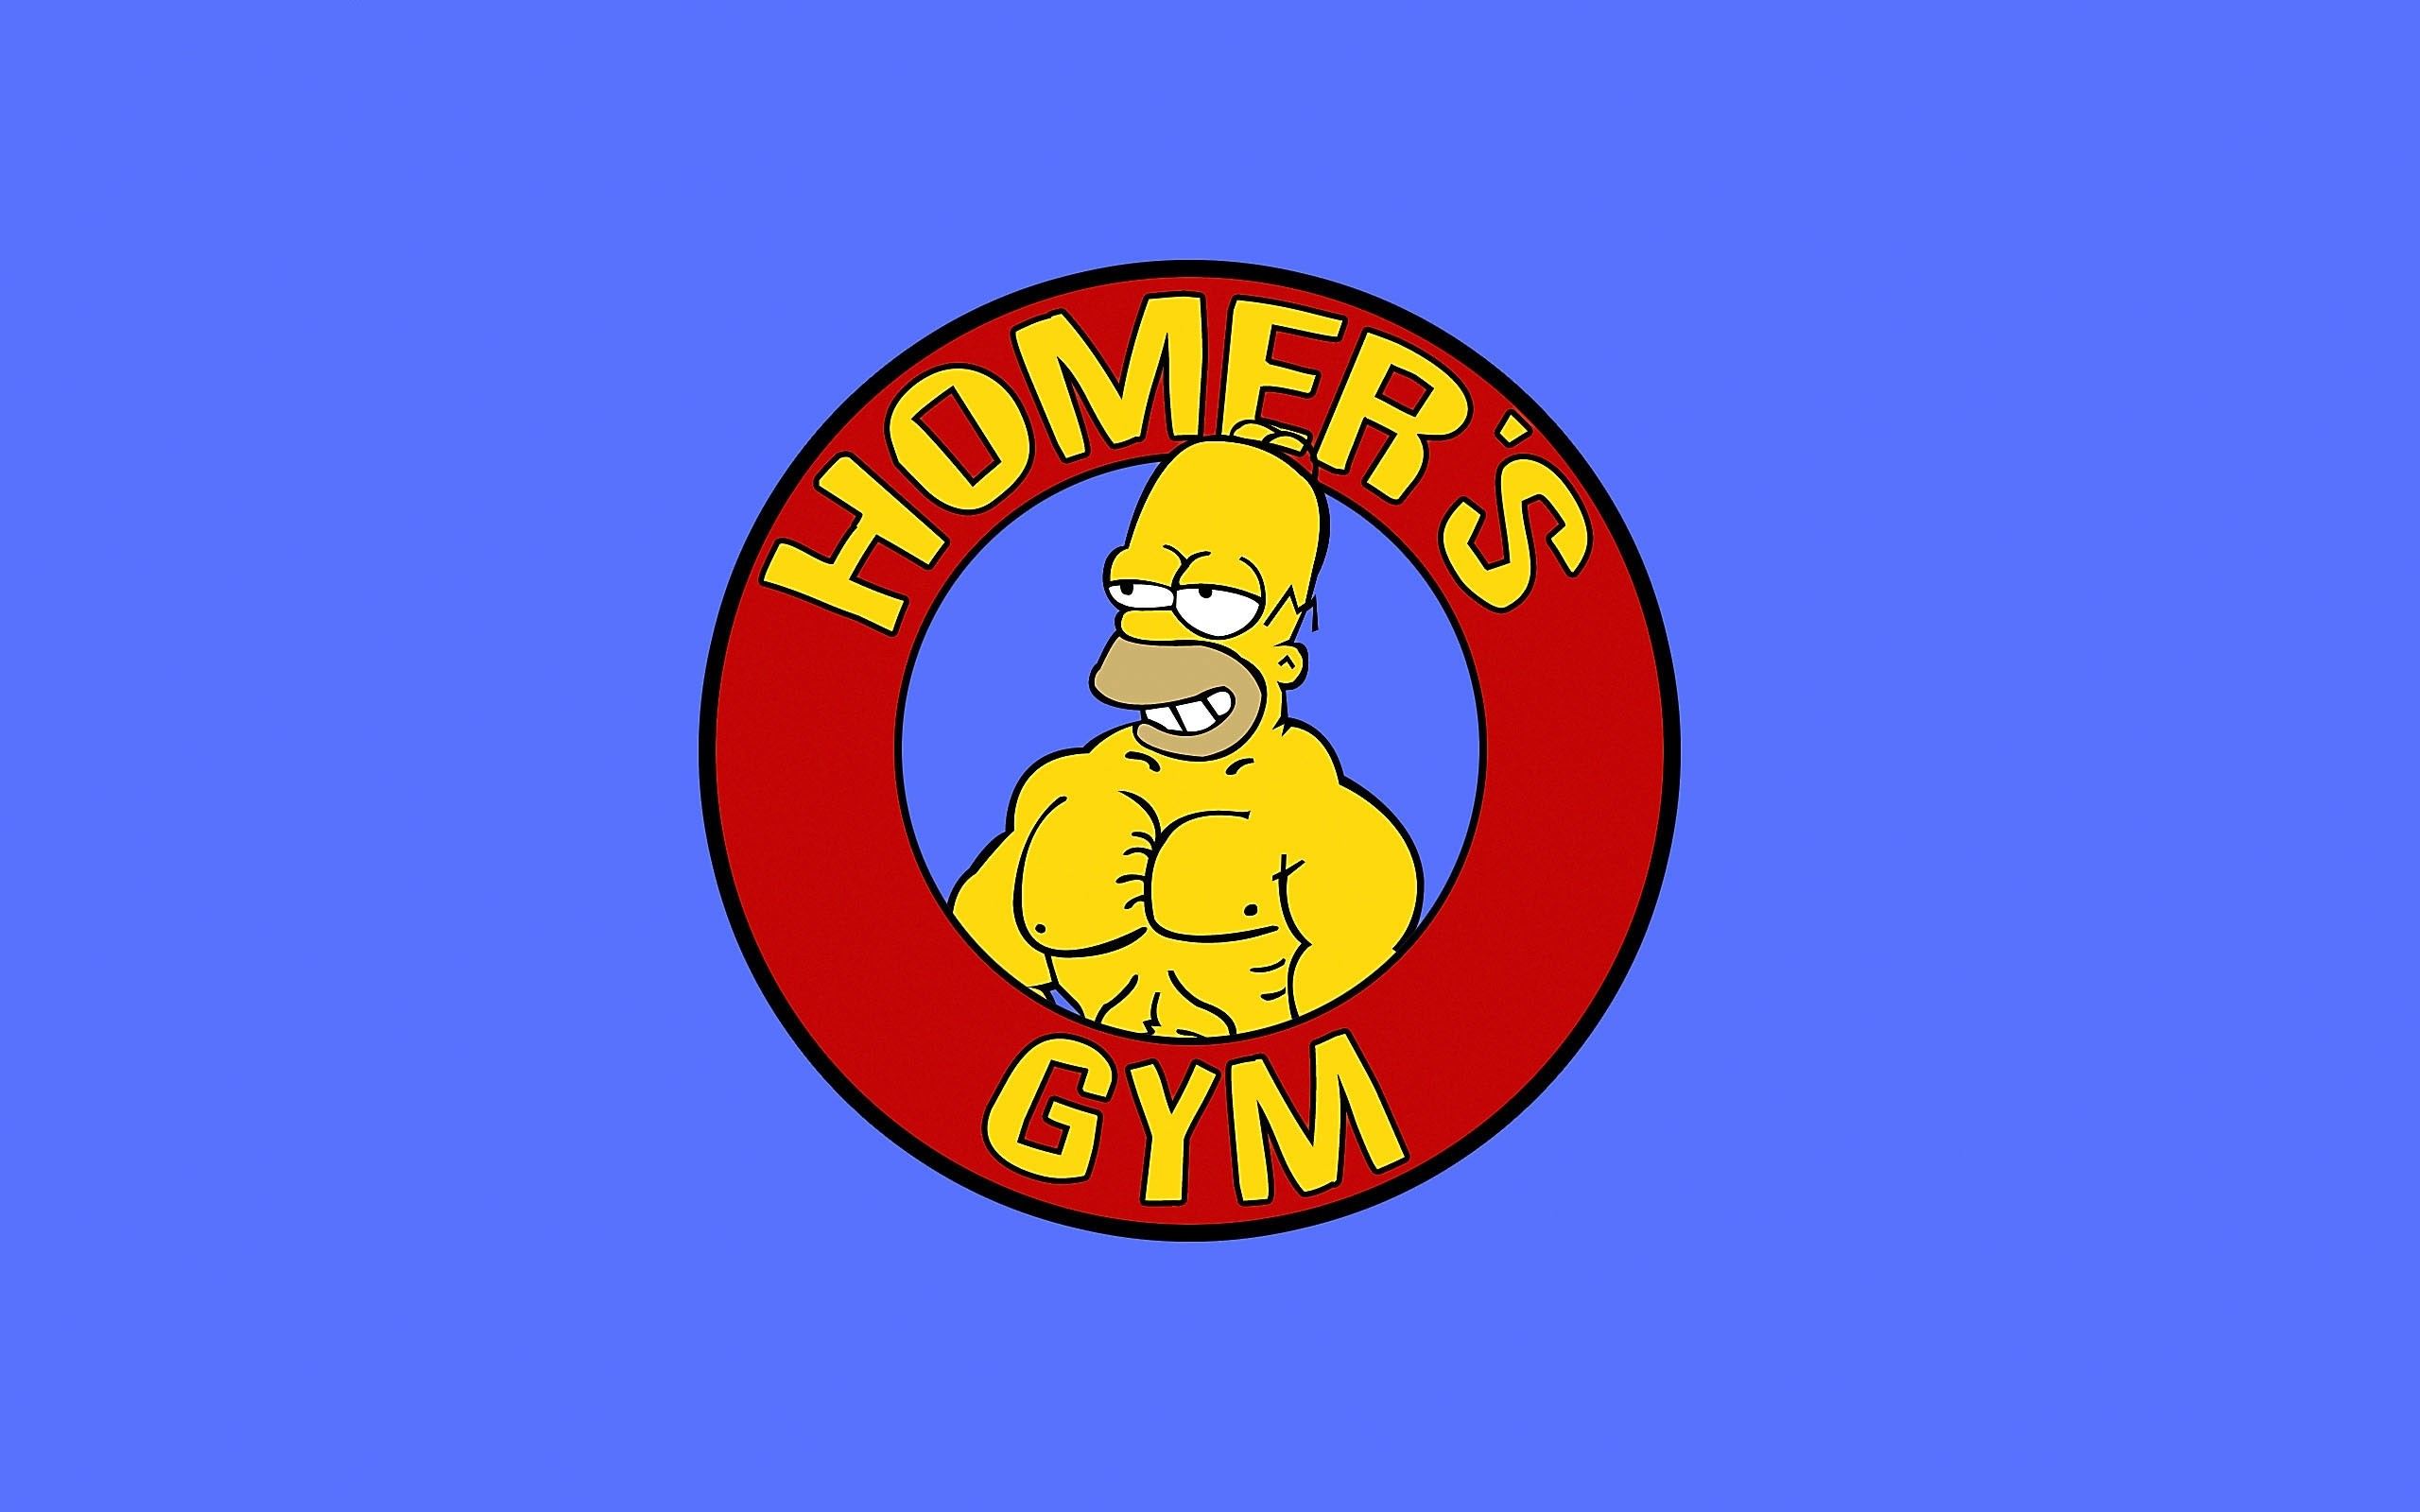 2560x1600 TV Show - The Simpsons Homer Simpson Wallpaper